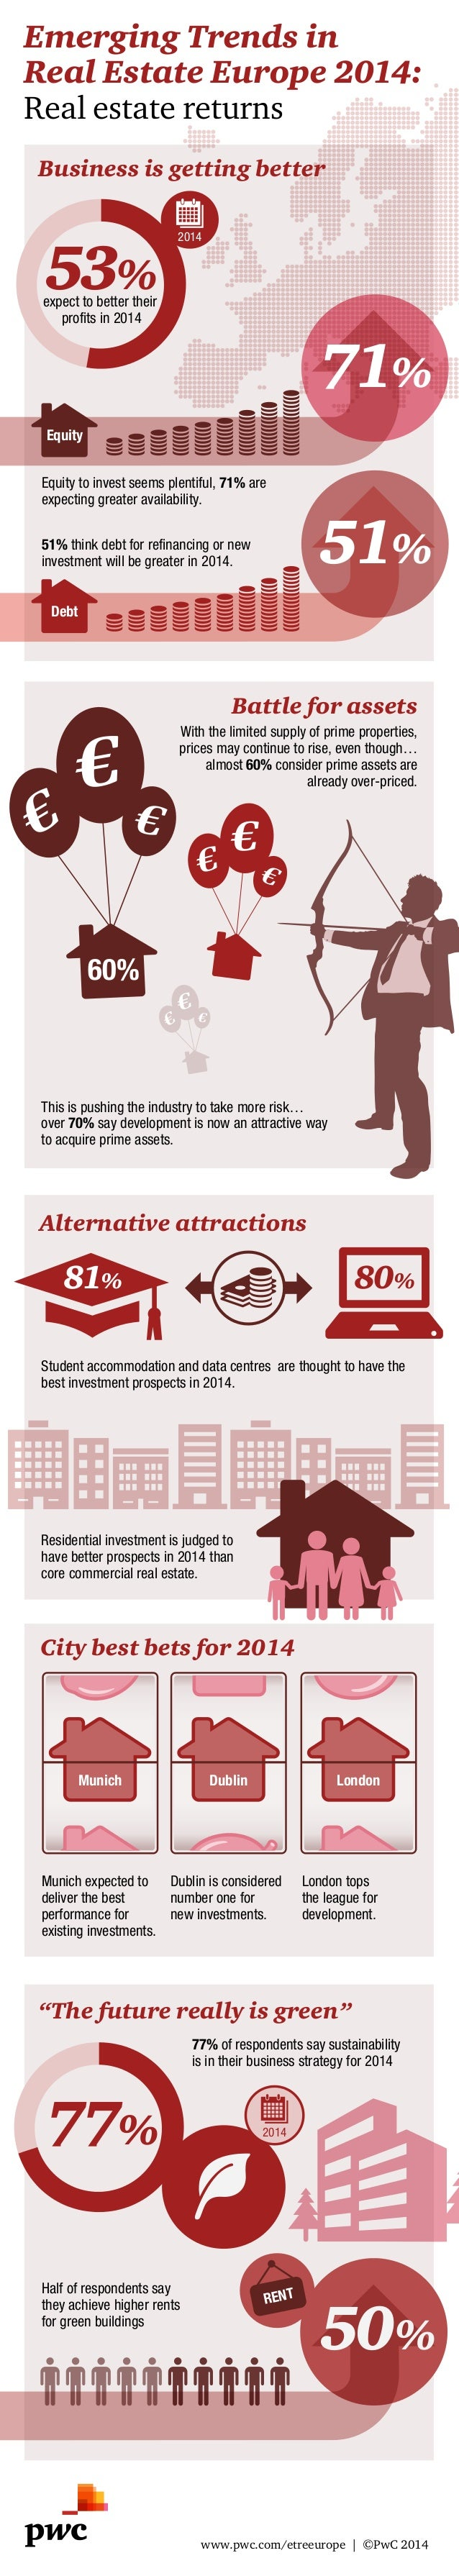 Emerging Trends in Real Estate Europe 2014: Real estate returns Business is getting better  53%  2014  expect to better th...